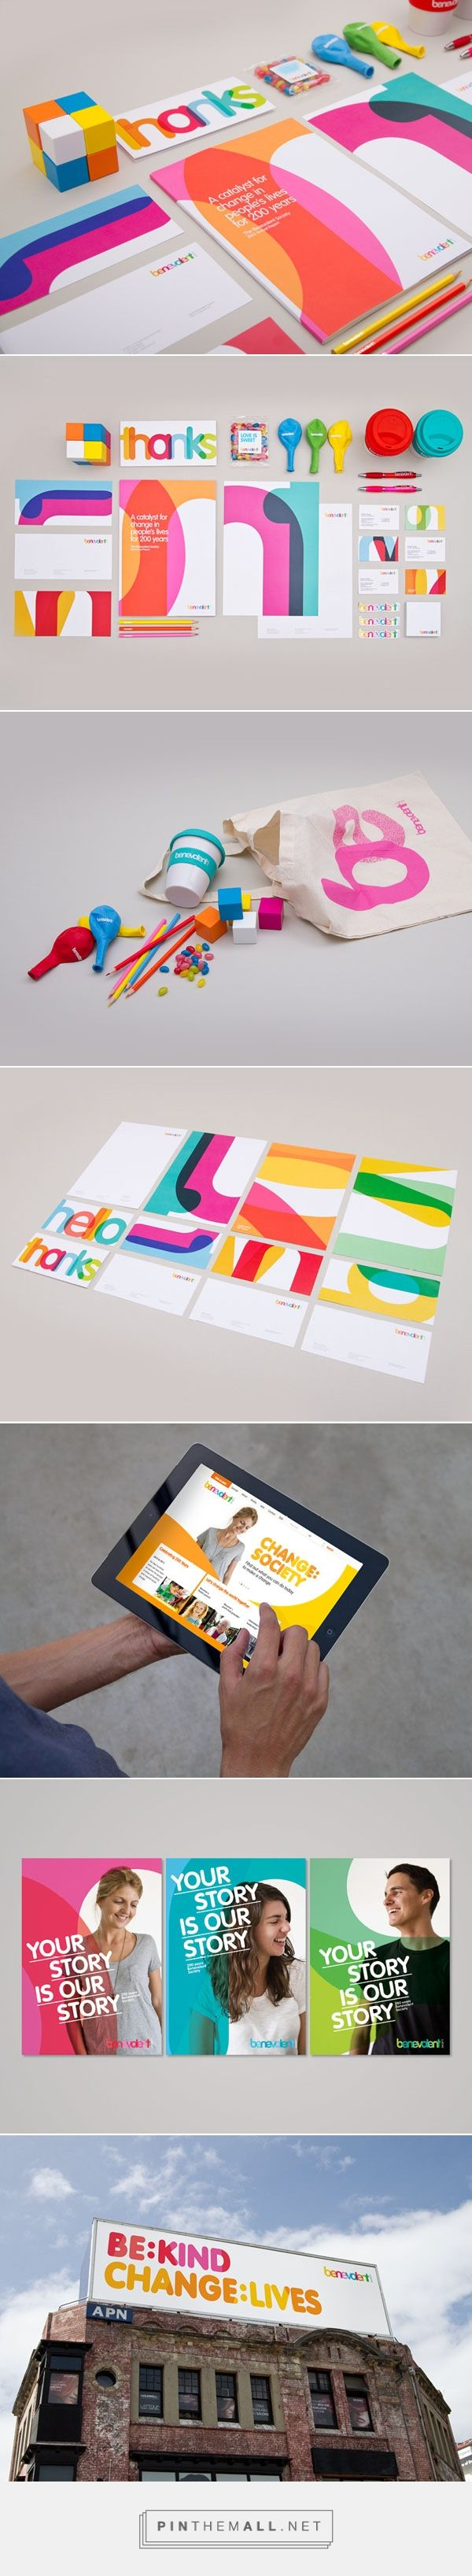 Benevolent Society - Brand Identity by Designworks Sydney... - a grouped images picture